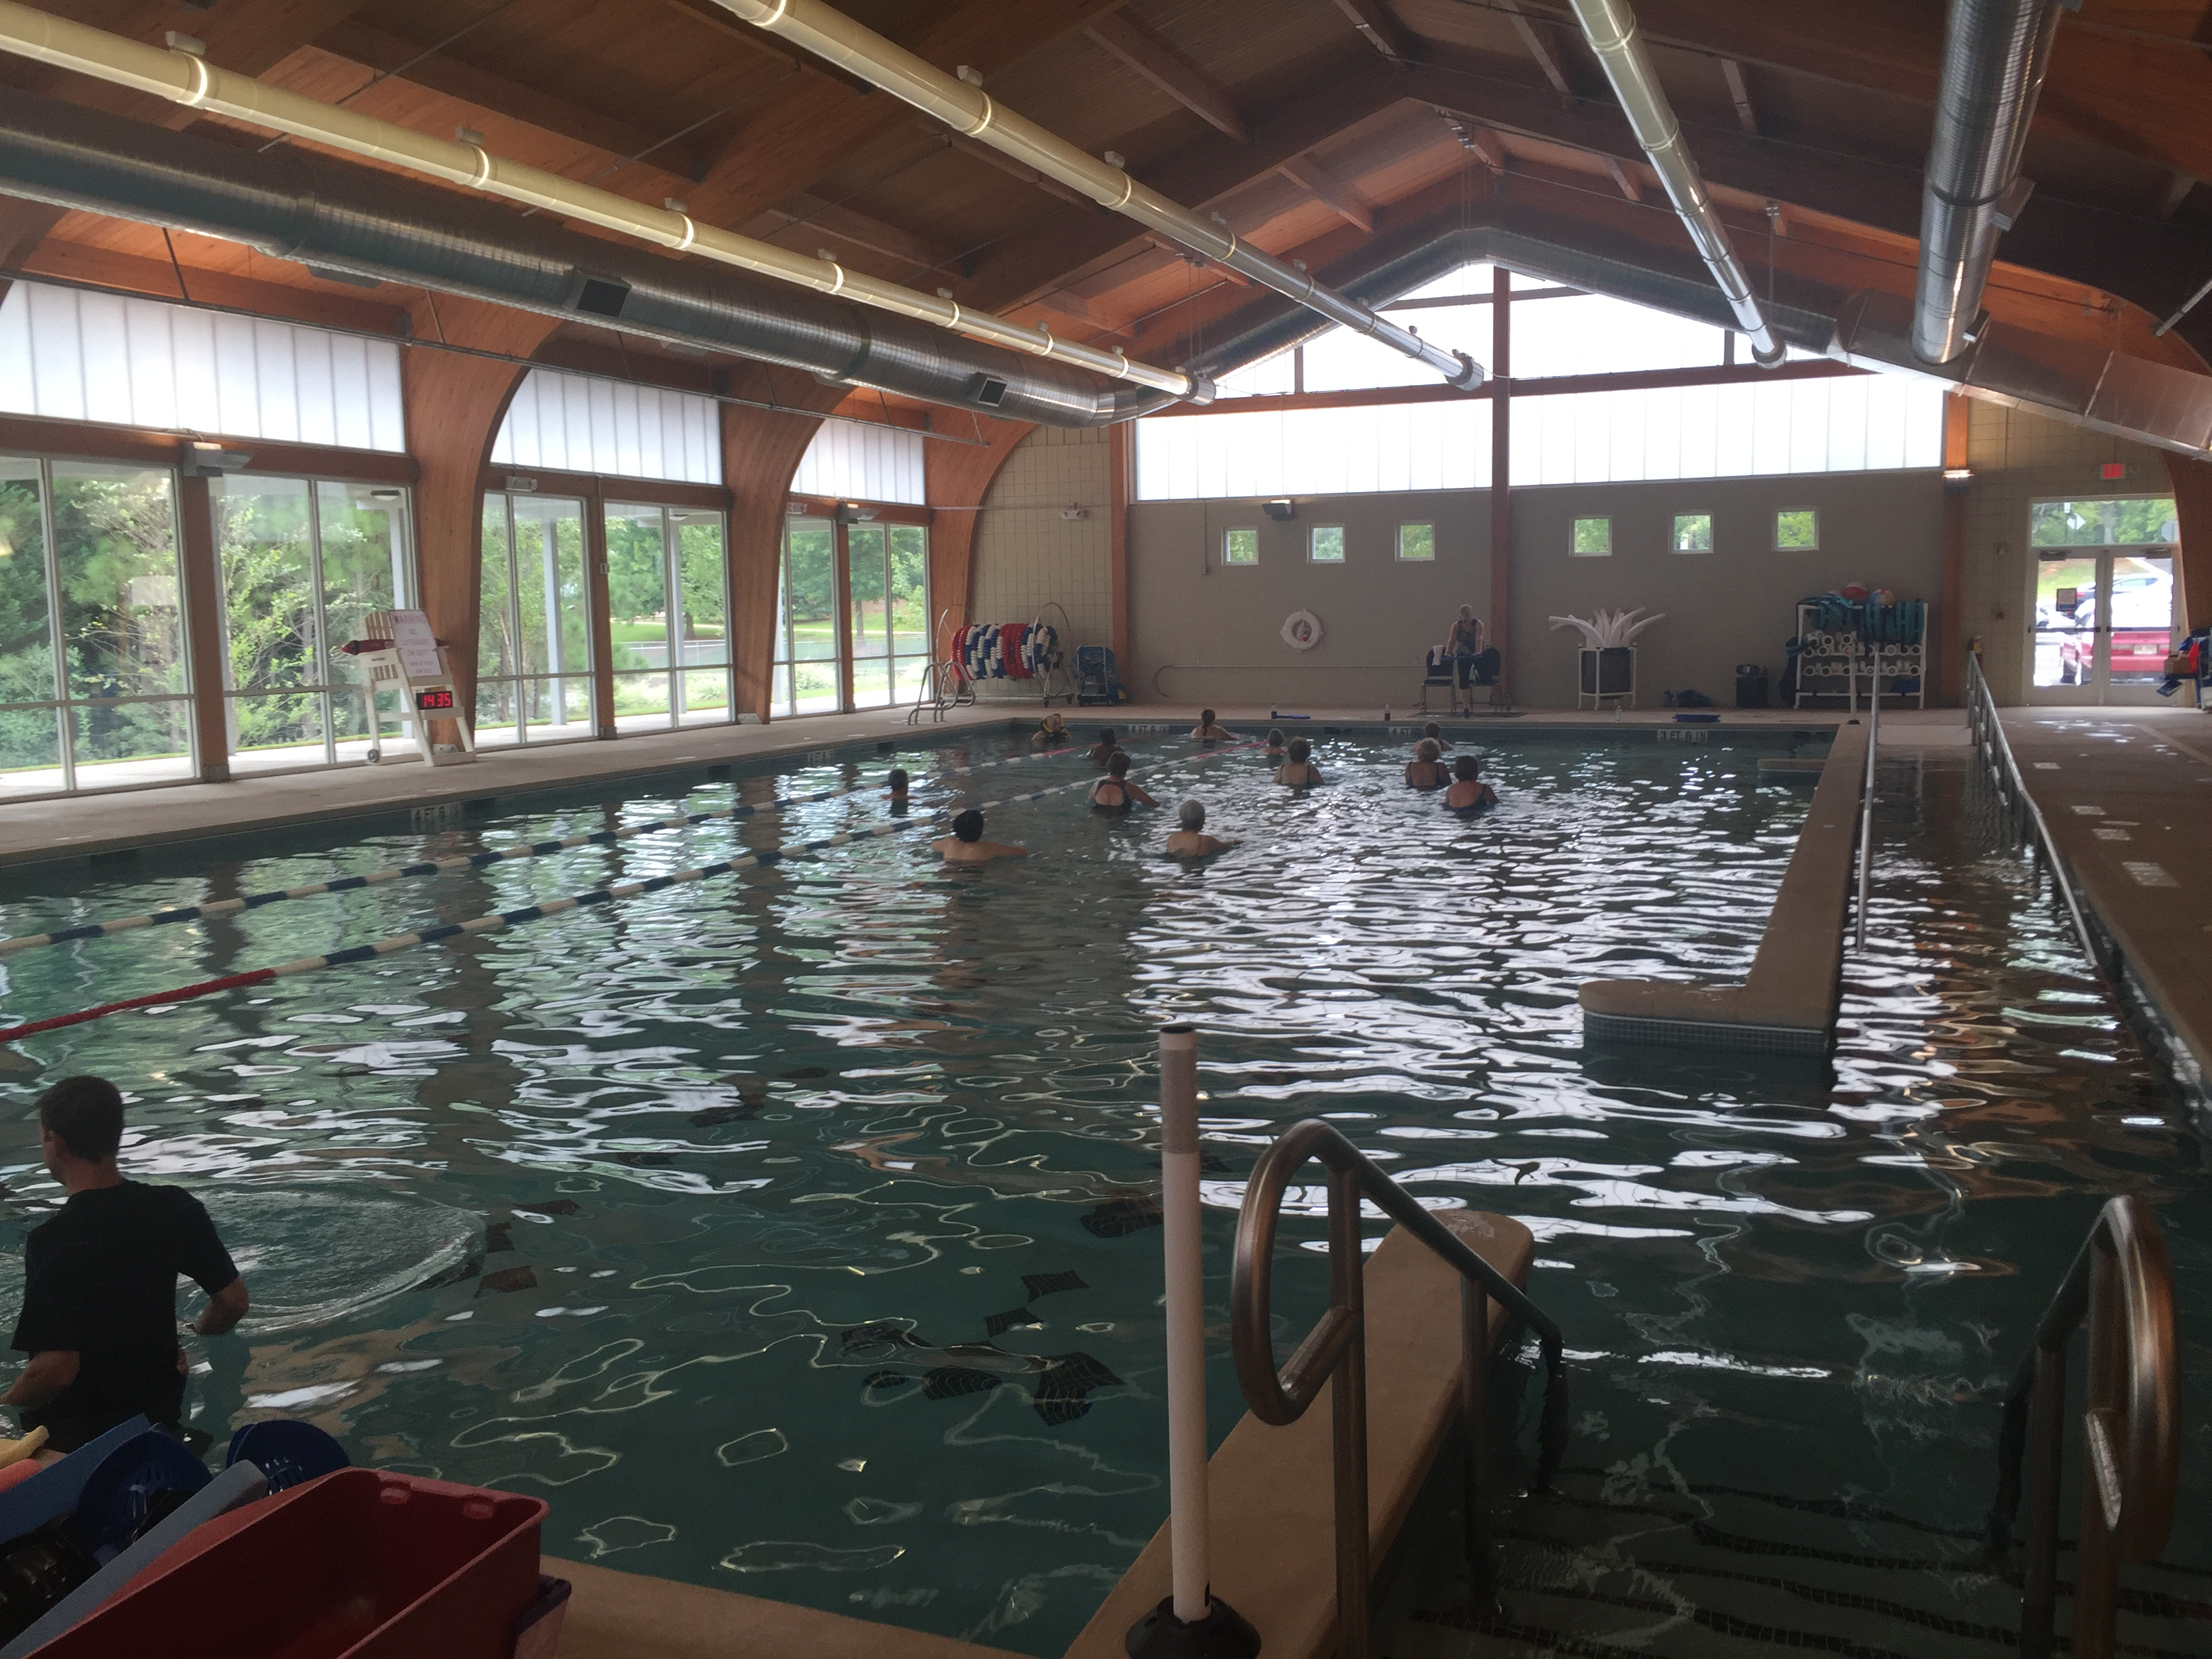 Dmd engineering testing inc established 1994 parks trails and recreational facilities for Swimming pool management companies